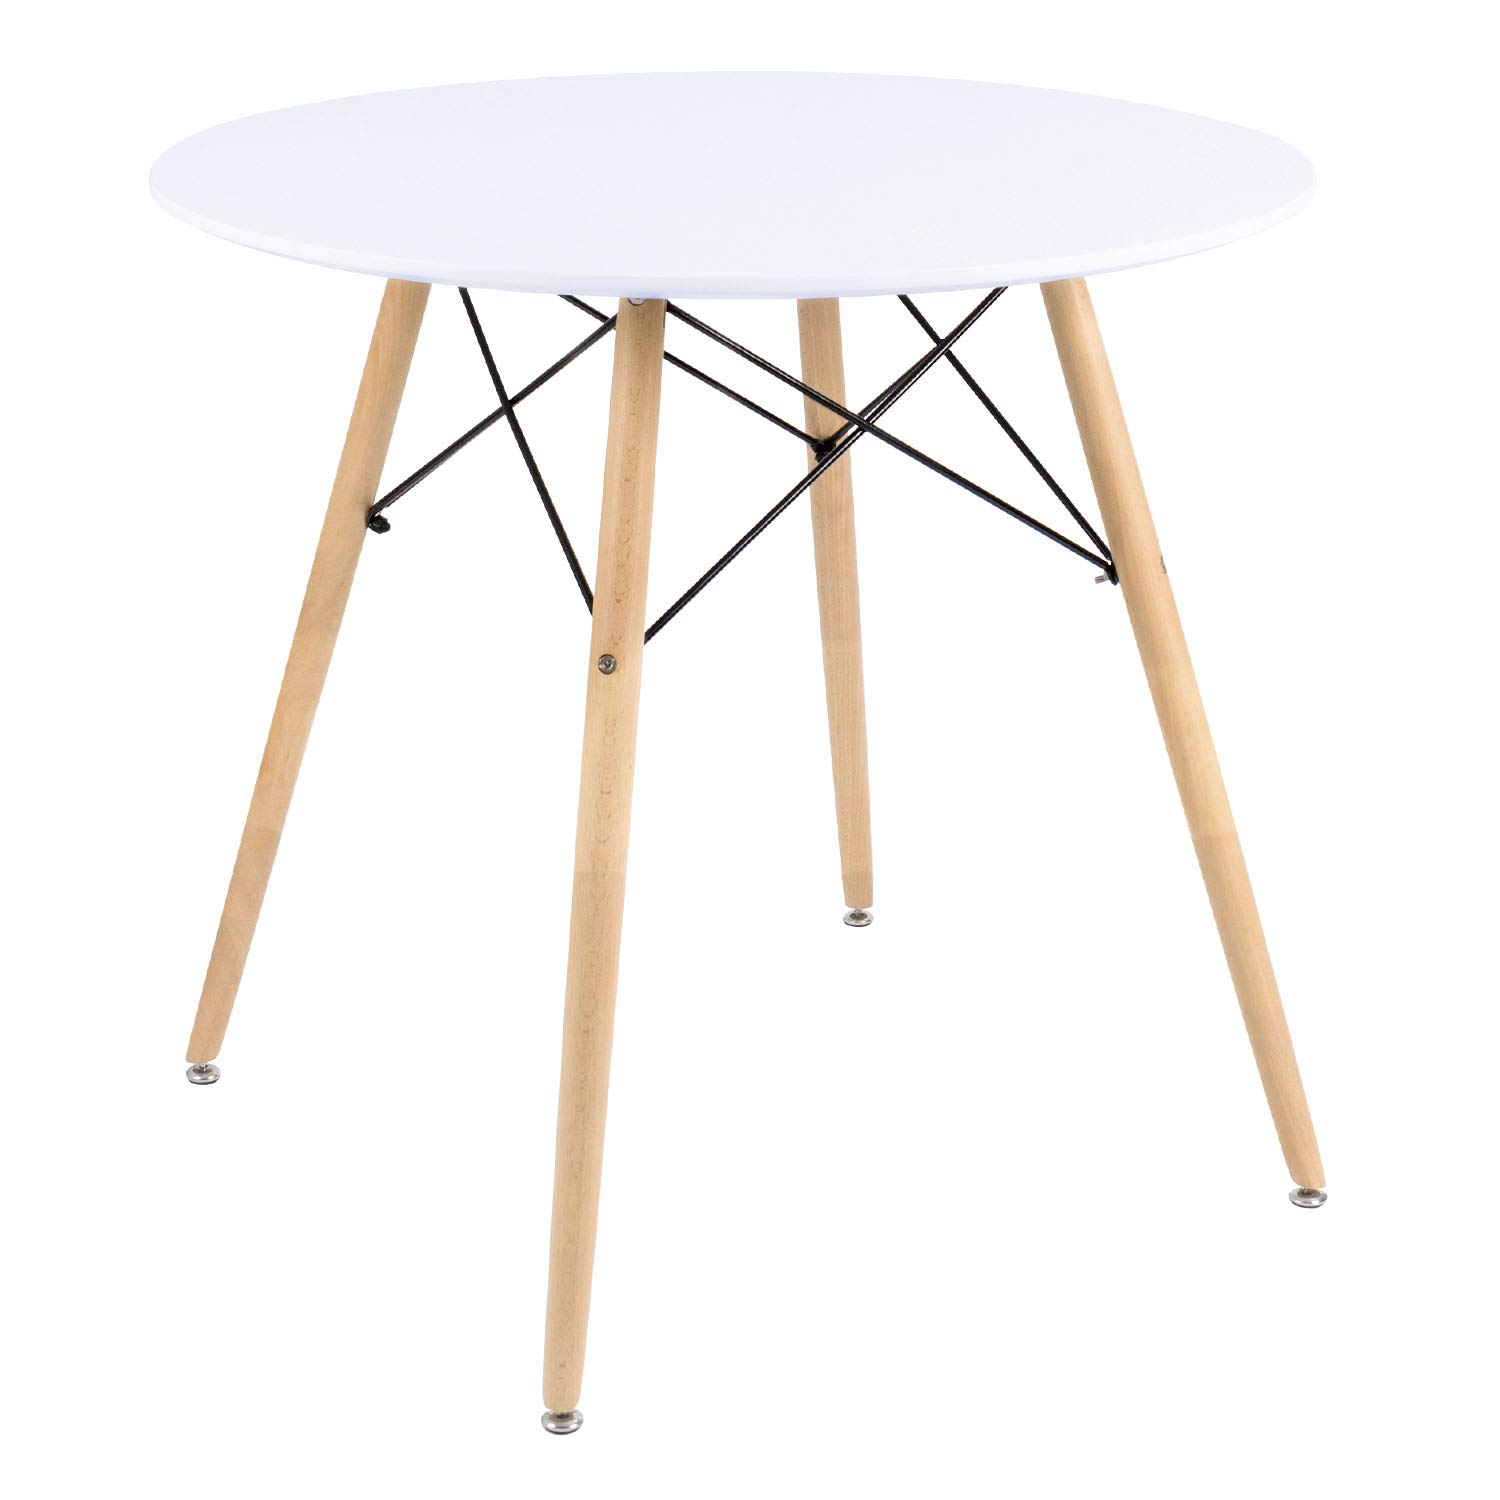 Furmax Kitchen Dining Table White Modern Style Round Leisure Coffee Table,Office Coference Desk with Wood Legs for Kitchen Living Room (001White)